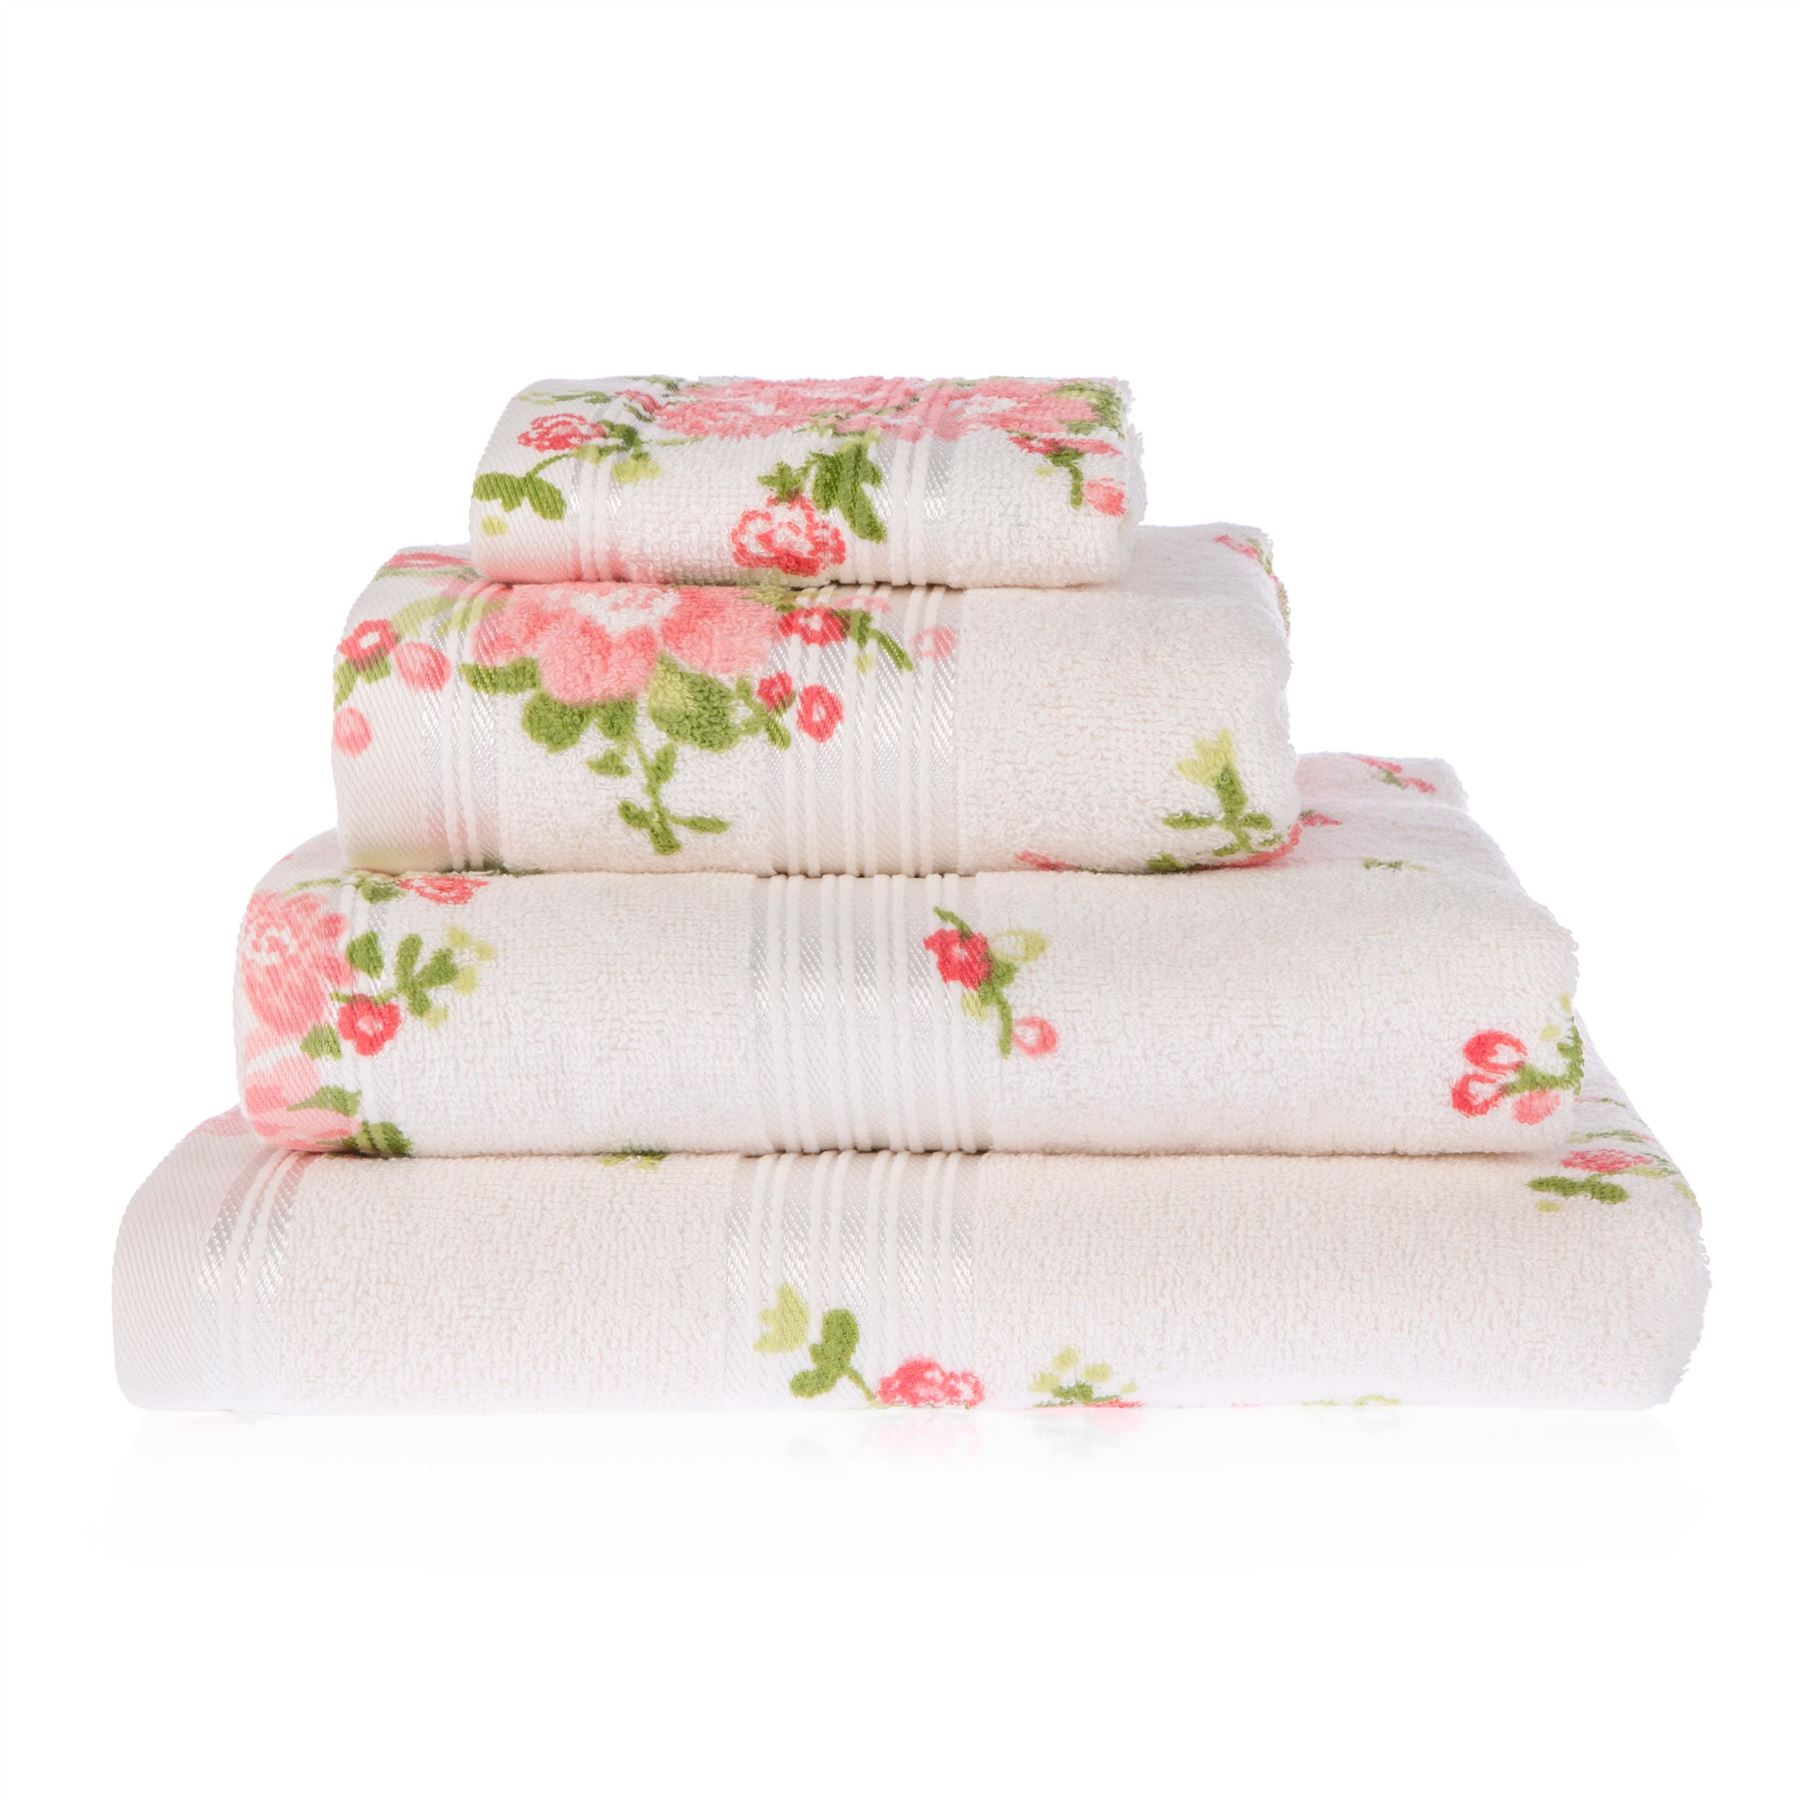 Rose floral printed 100 cotton face hand bath towel for How to get towels white